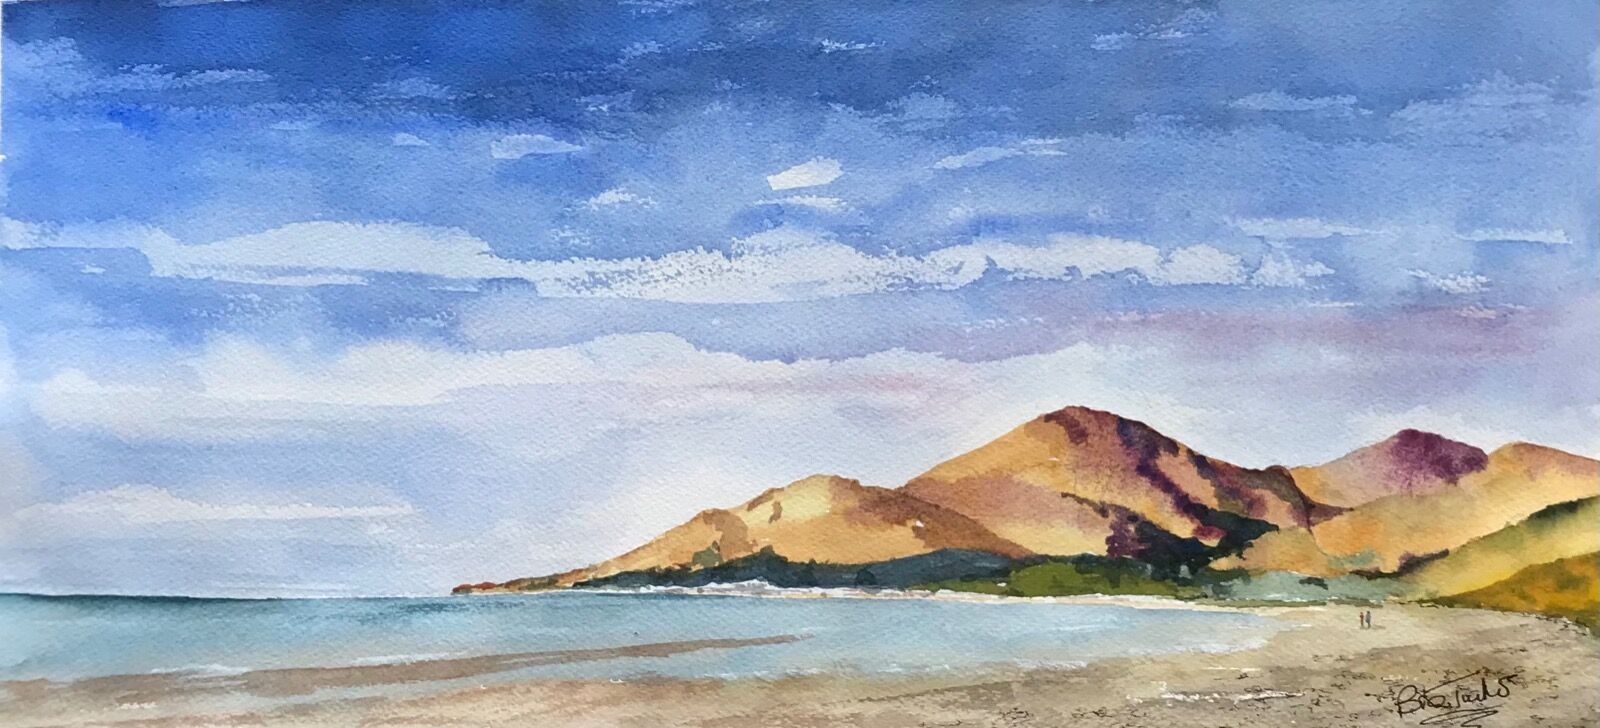 Summer in the Mourne Mountains from Murlough Bay